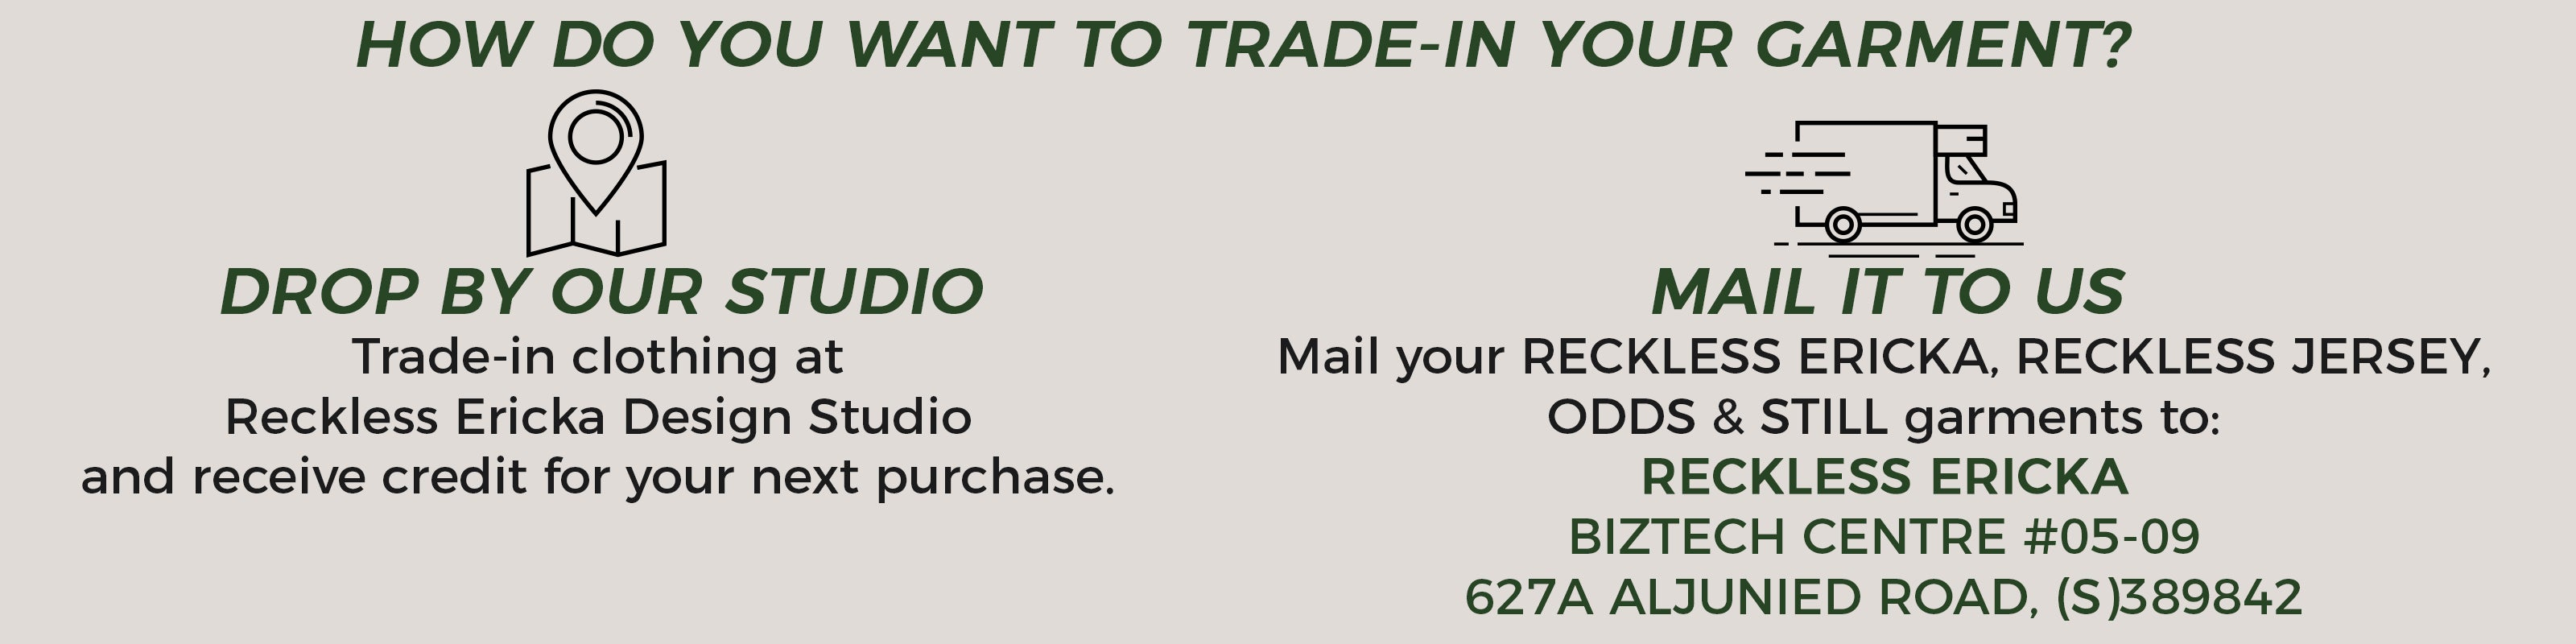 trade in instructions